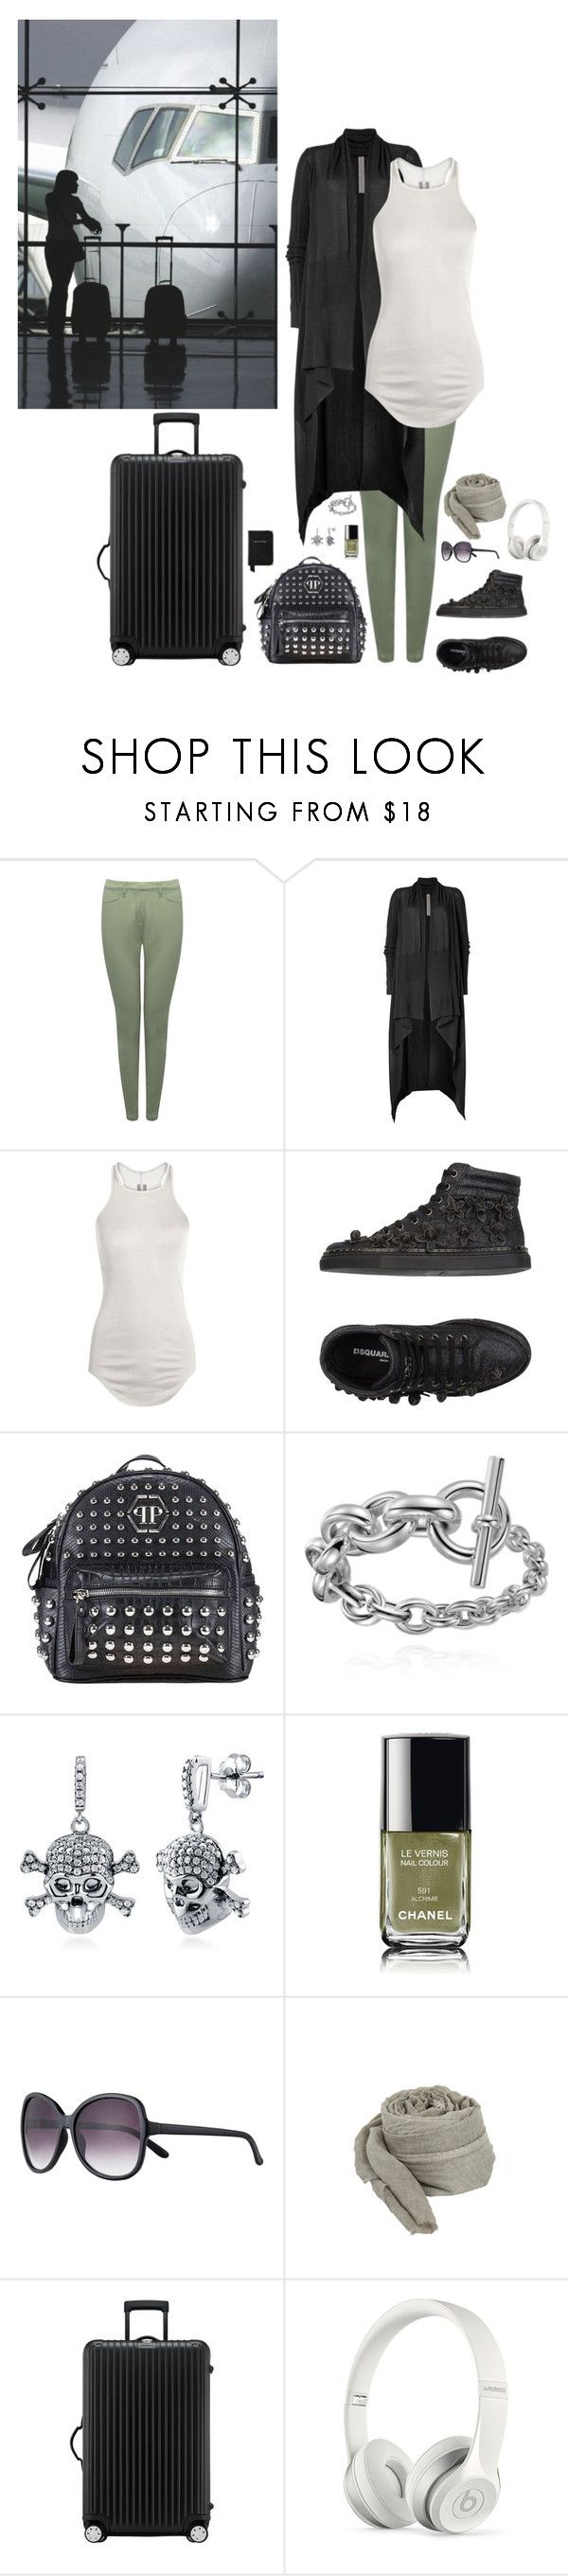 """""""on my way"""" by lila77 ❤ liked on Polyvore featuring M&Co, Rick Owens, Dsquared2, Philipp Plein, BERRICLE, Chanel, John Lewis, Faliero Sarti, Rimowa and Beats by Dr. Dre"""